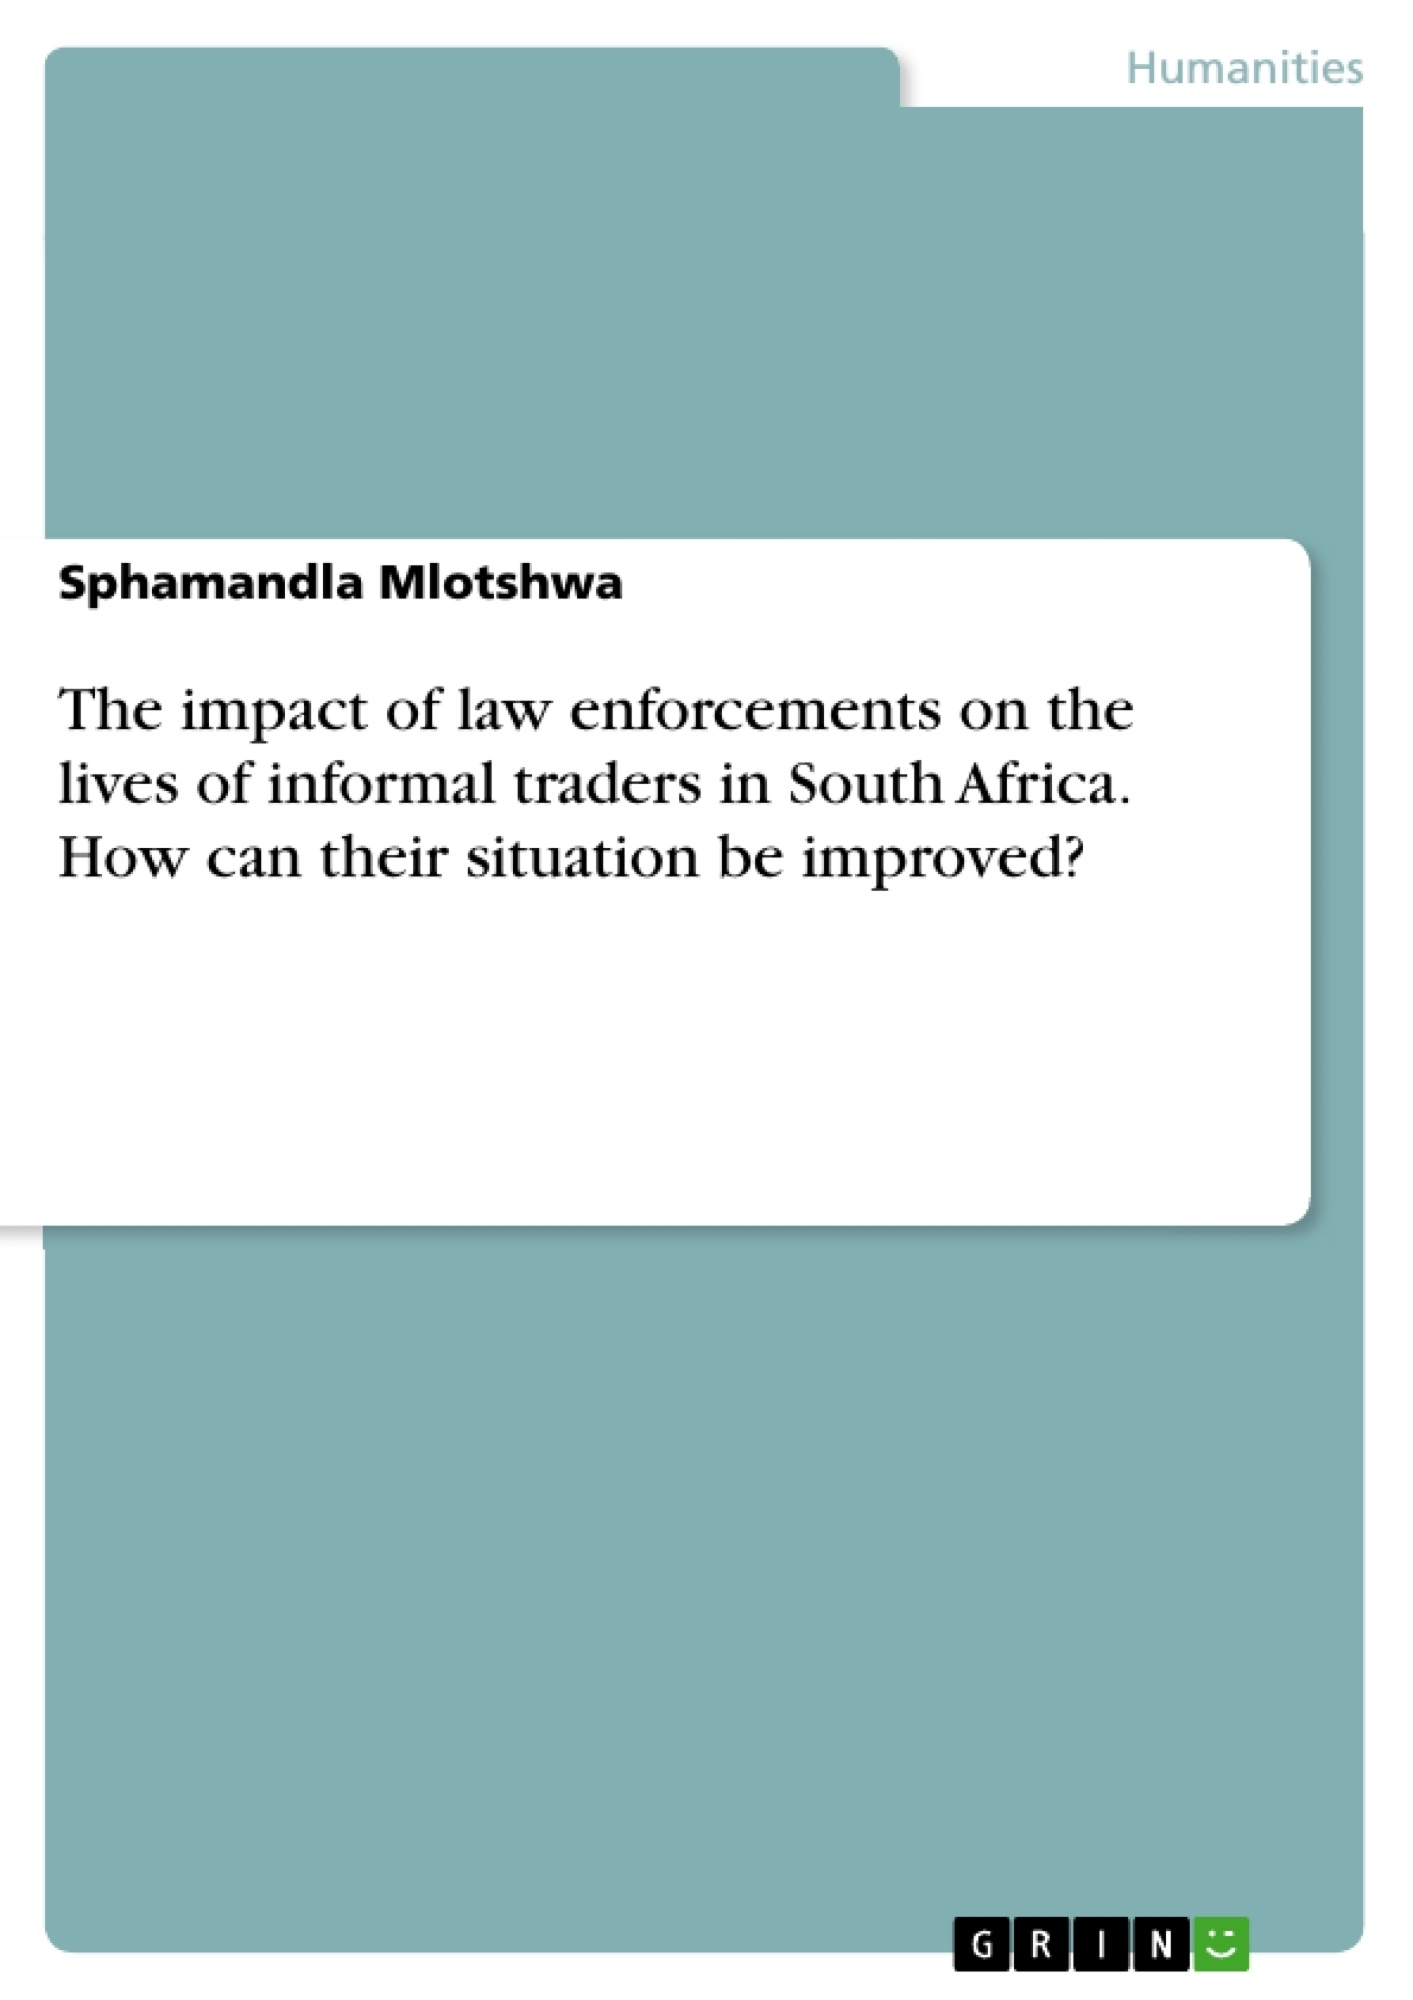 Title: The impact of law enforcements on the lives of informal traders in South Africa. How can their situation be improved?